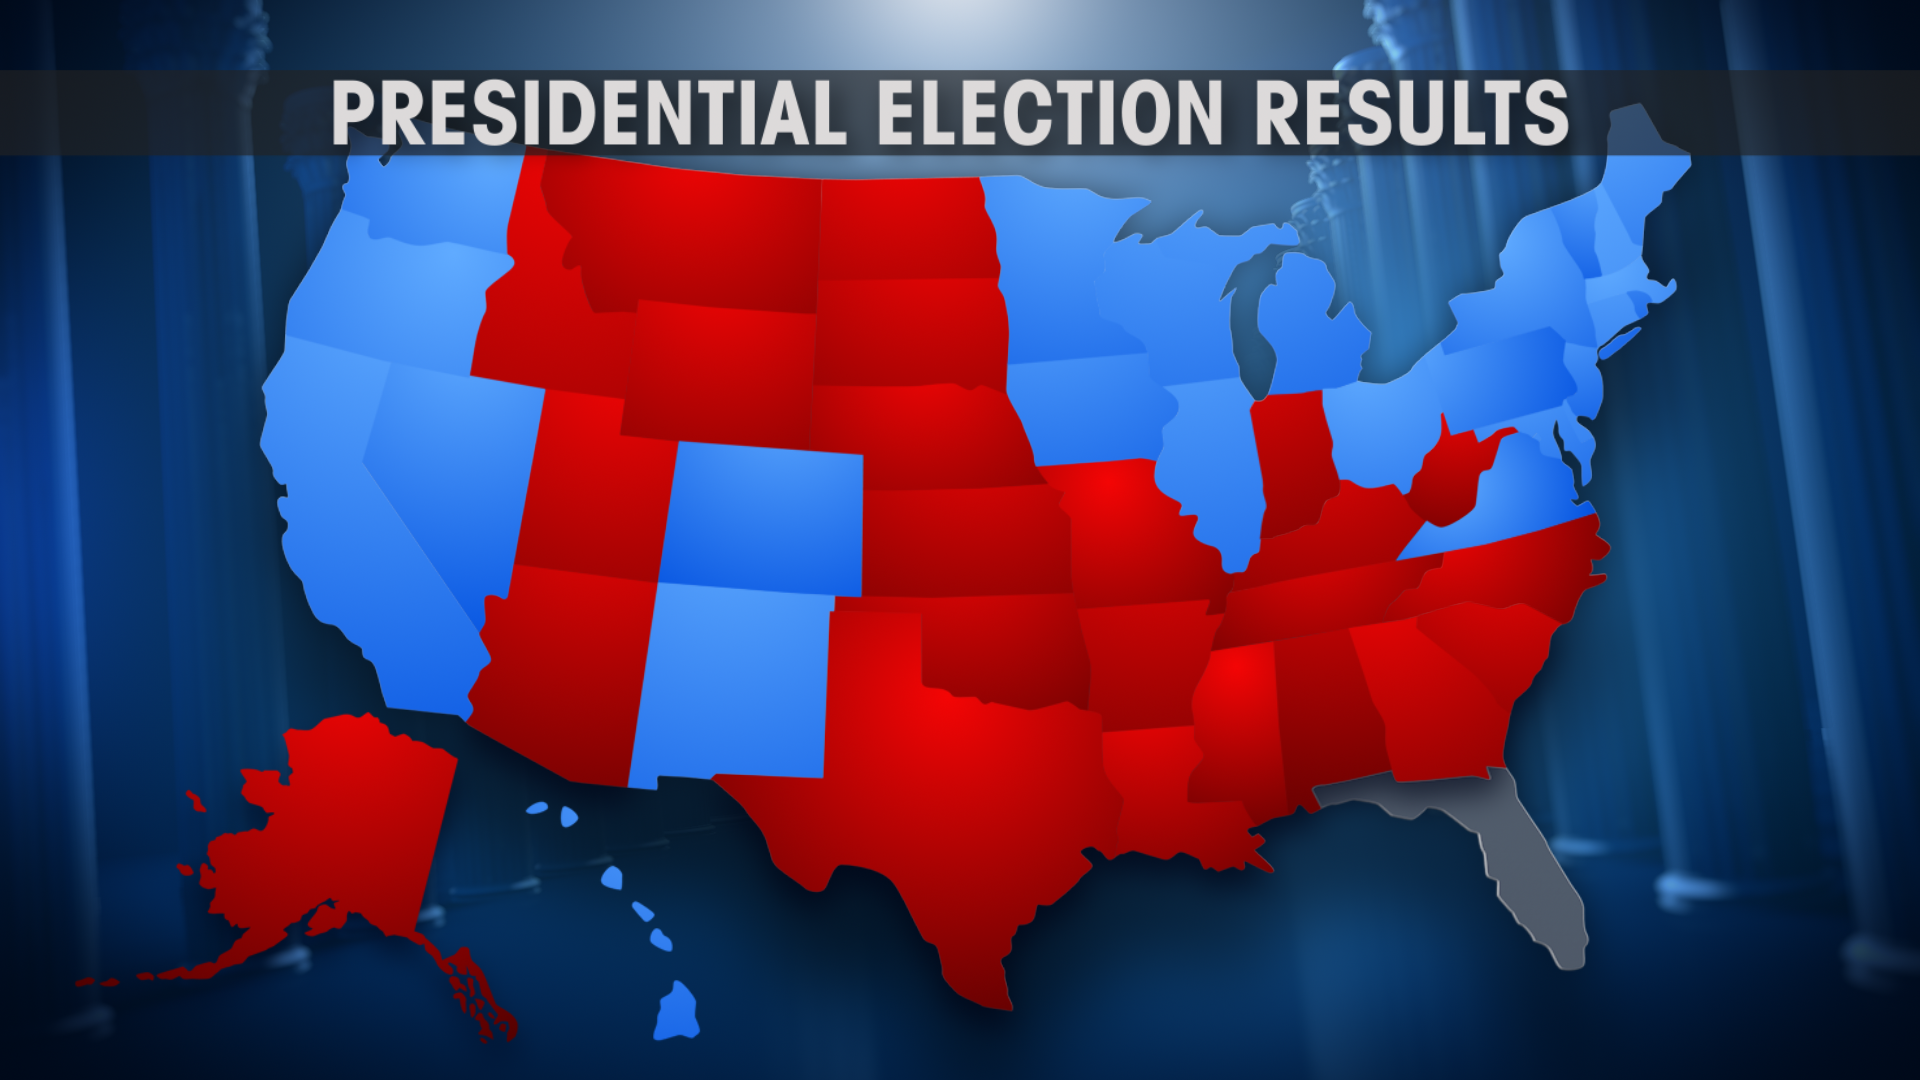 PresidentialElectionResults_OTS.png